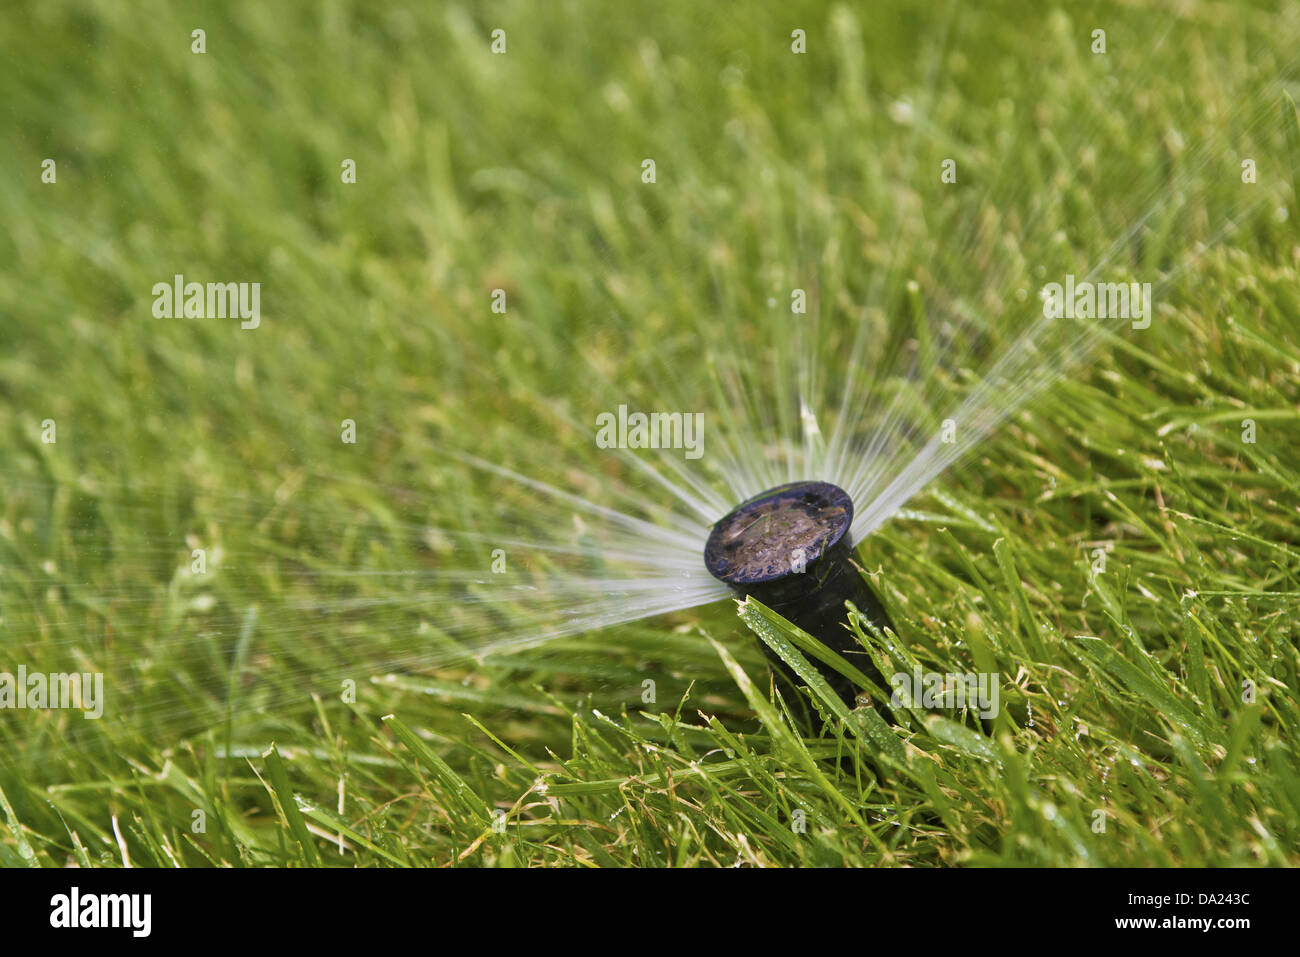 Water sprinkler in the grass, close up image with selective focus. - Stock Image